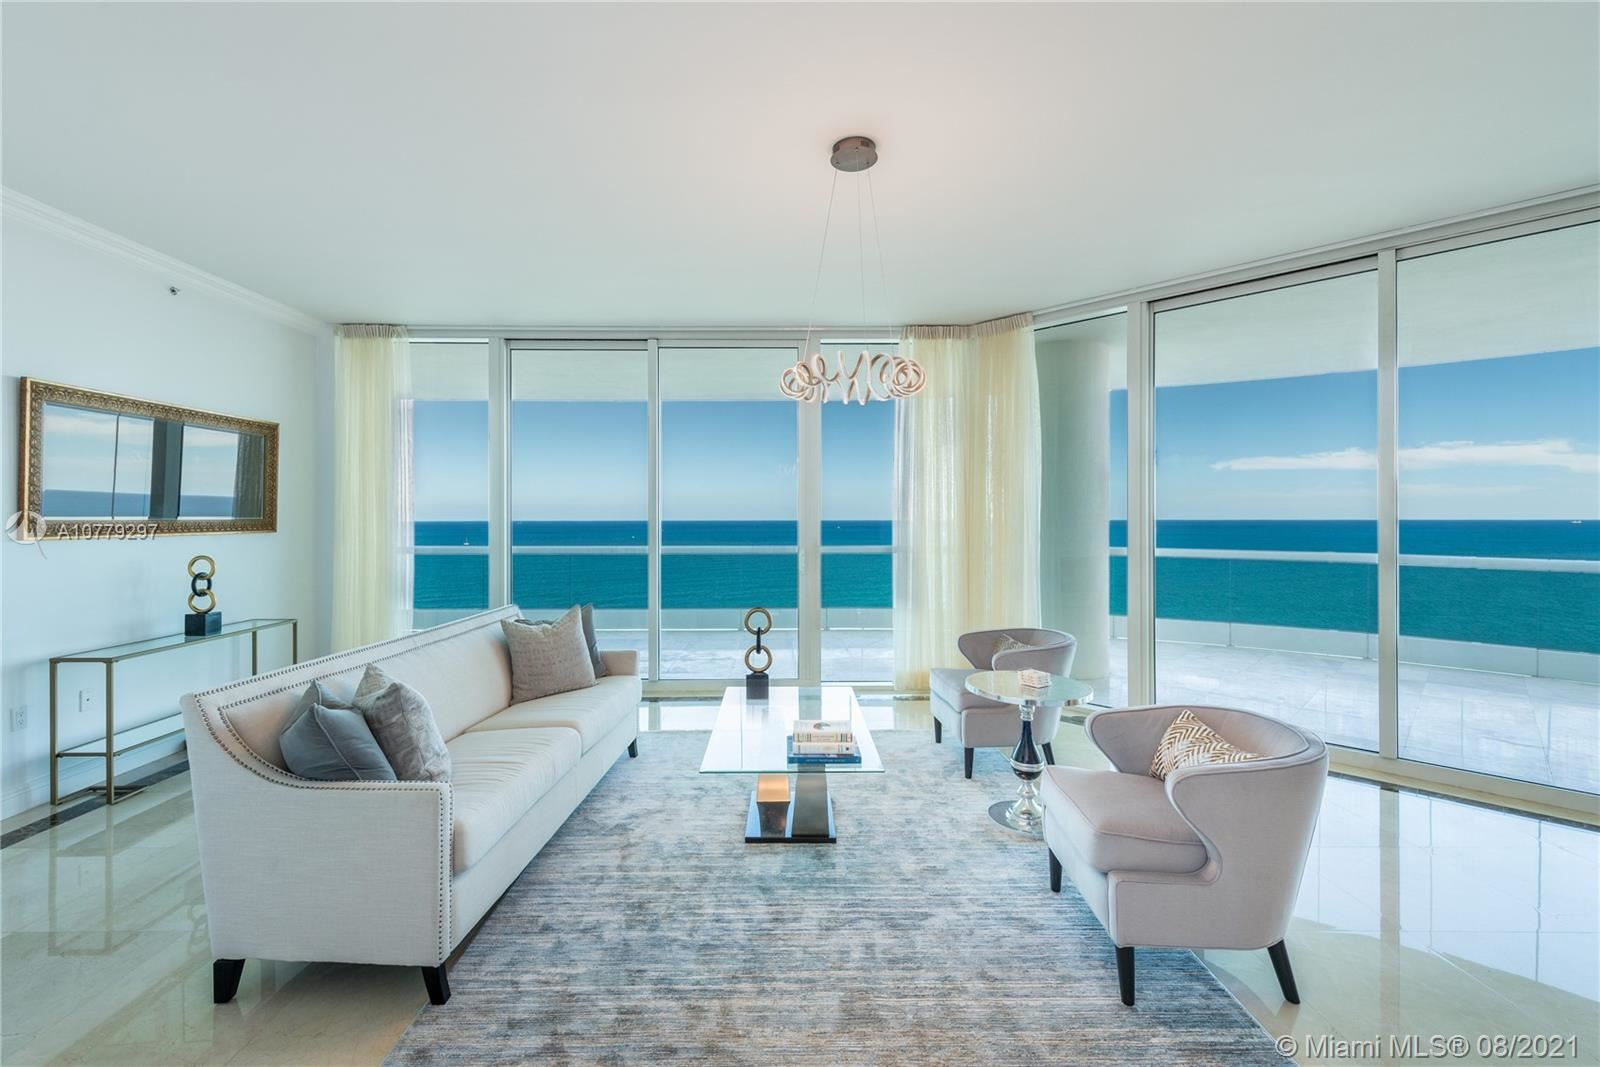 16047 Collins Ave #2104, Sunny Isles, FL 33160 - #: A10779297